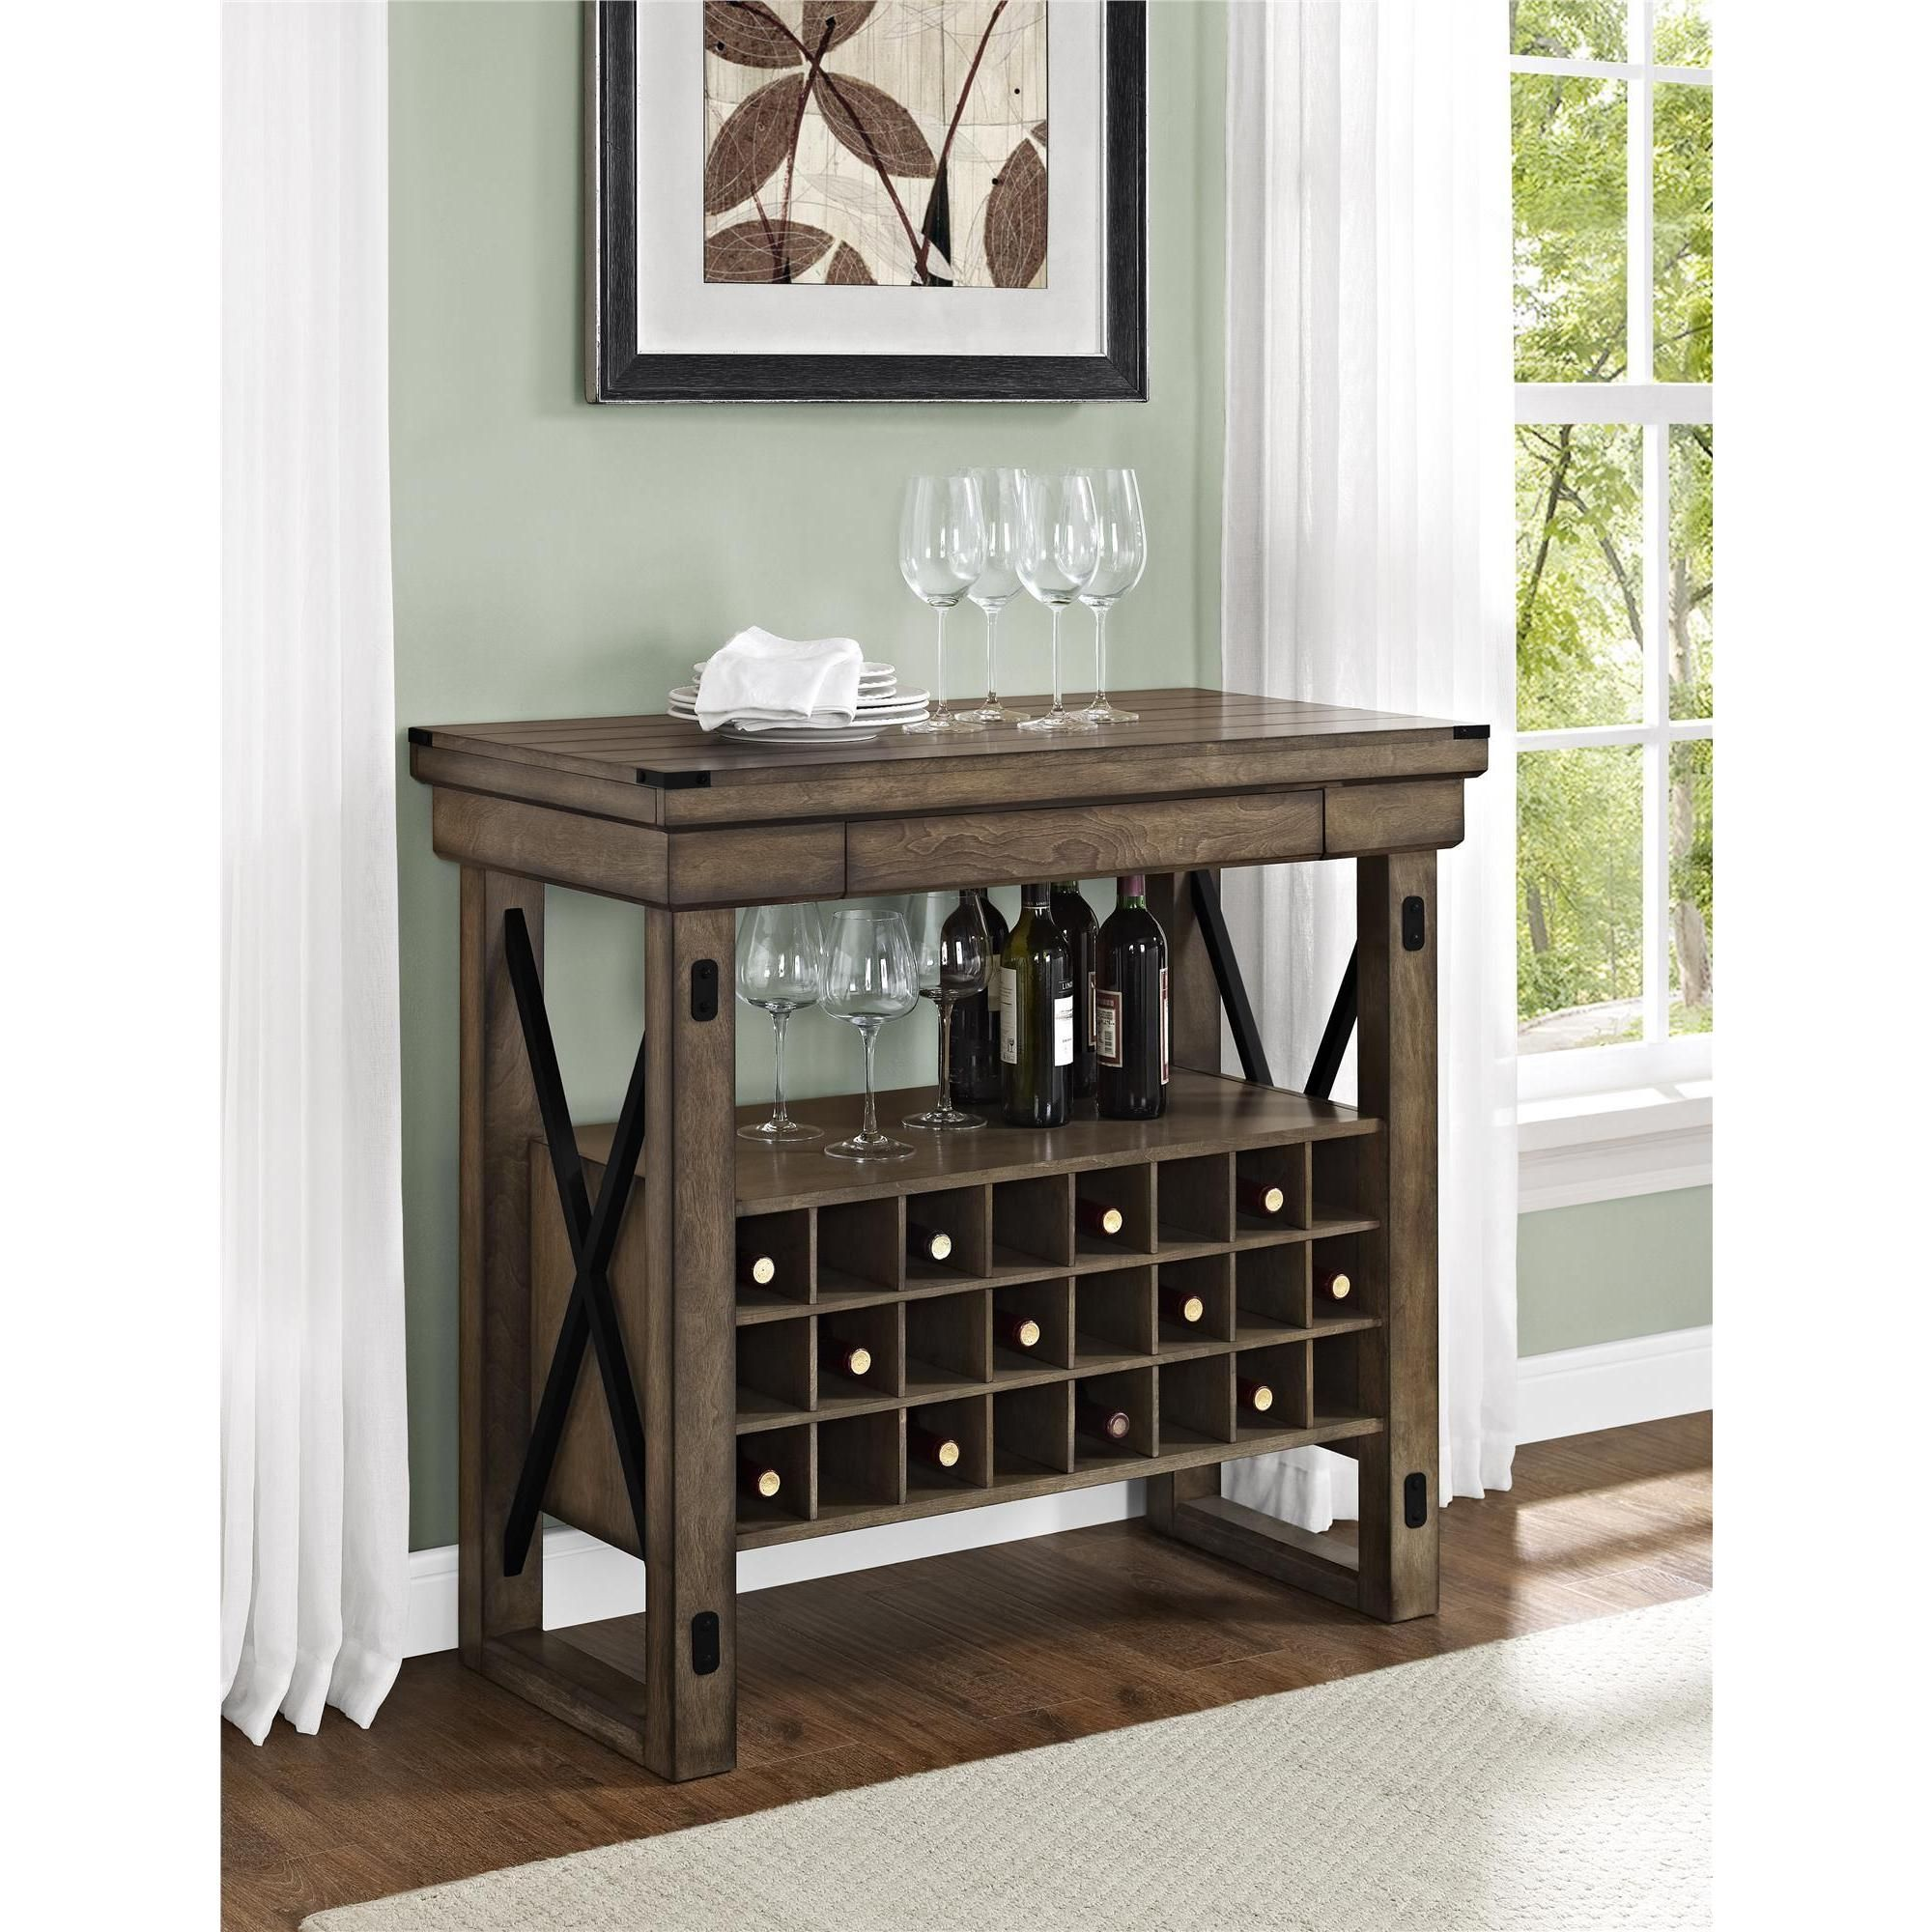 l decor bar cabinet with rustic charming org furniture and storage wine